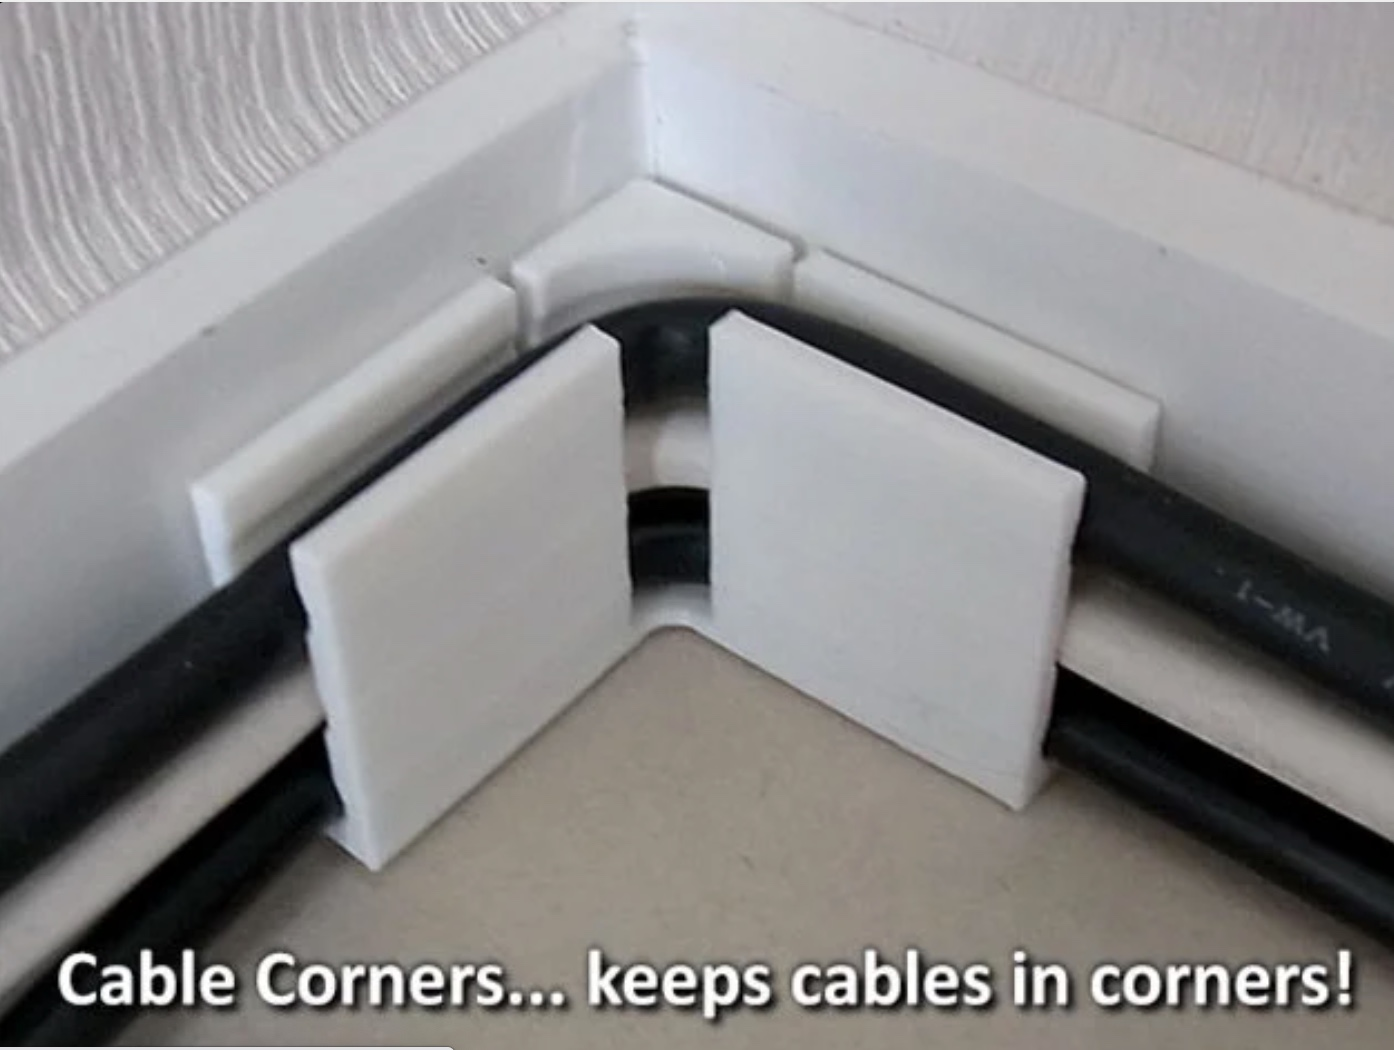 jig for keeping cable in corners